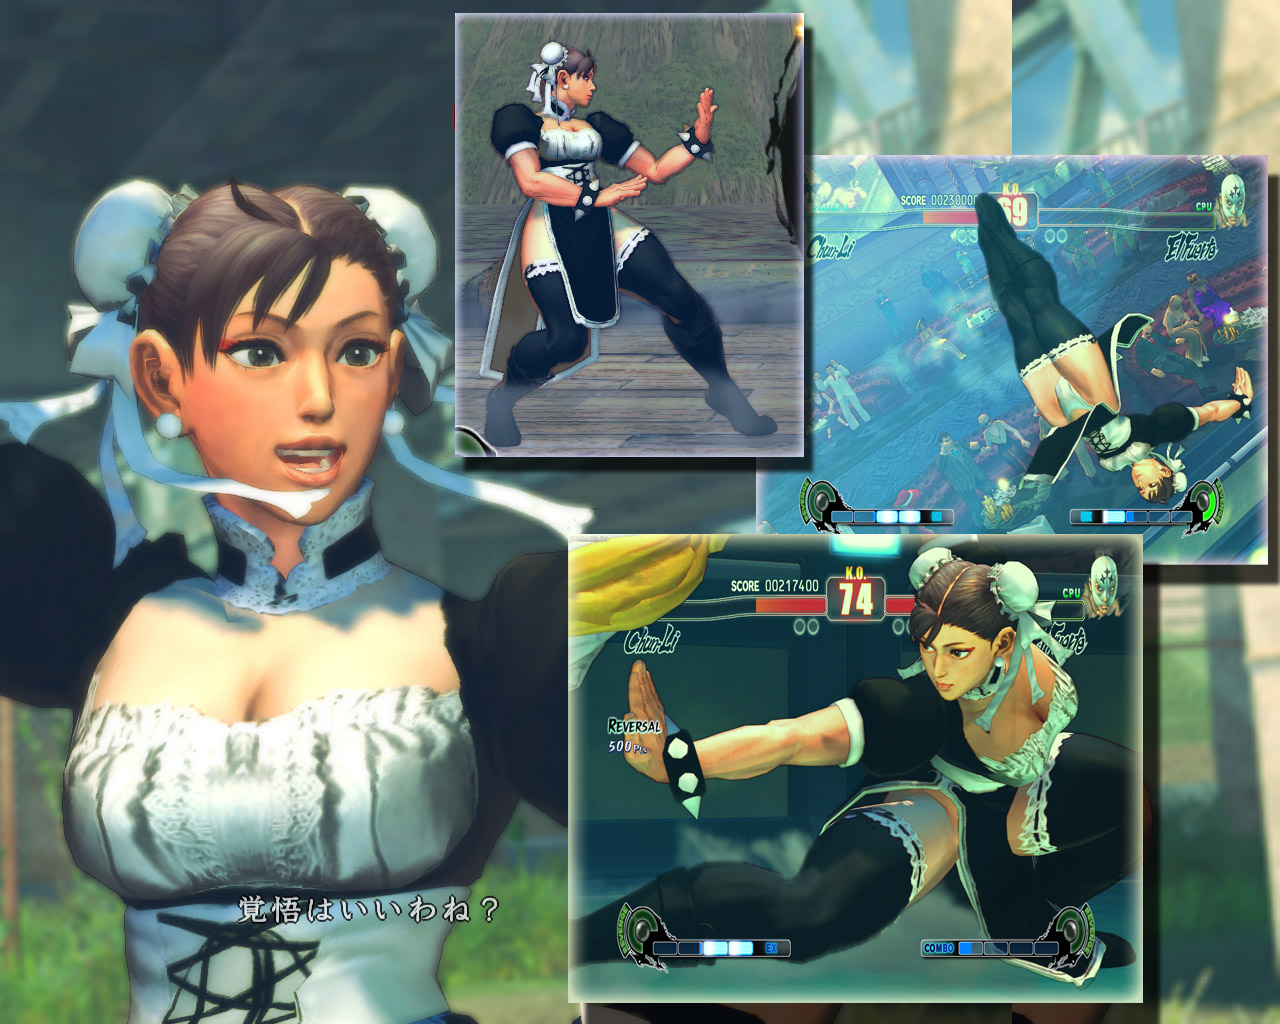 Street fighter iv arcade mods nude mods sexy gallery